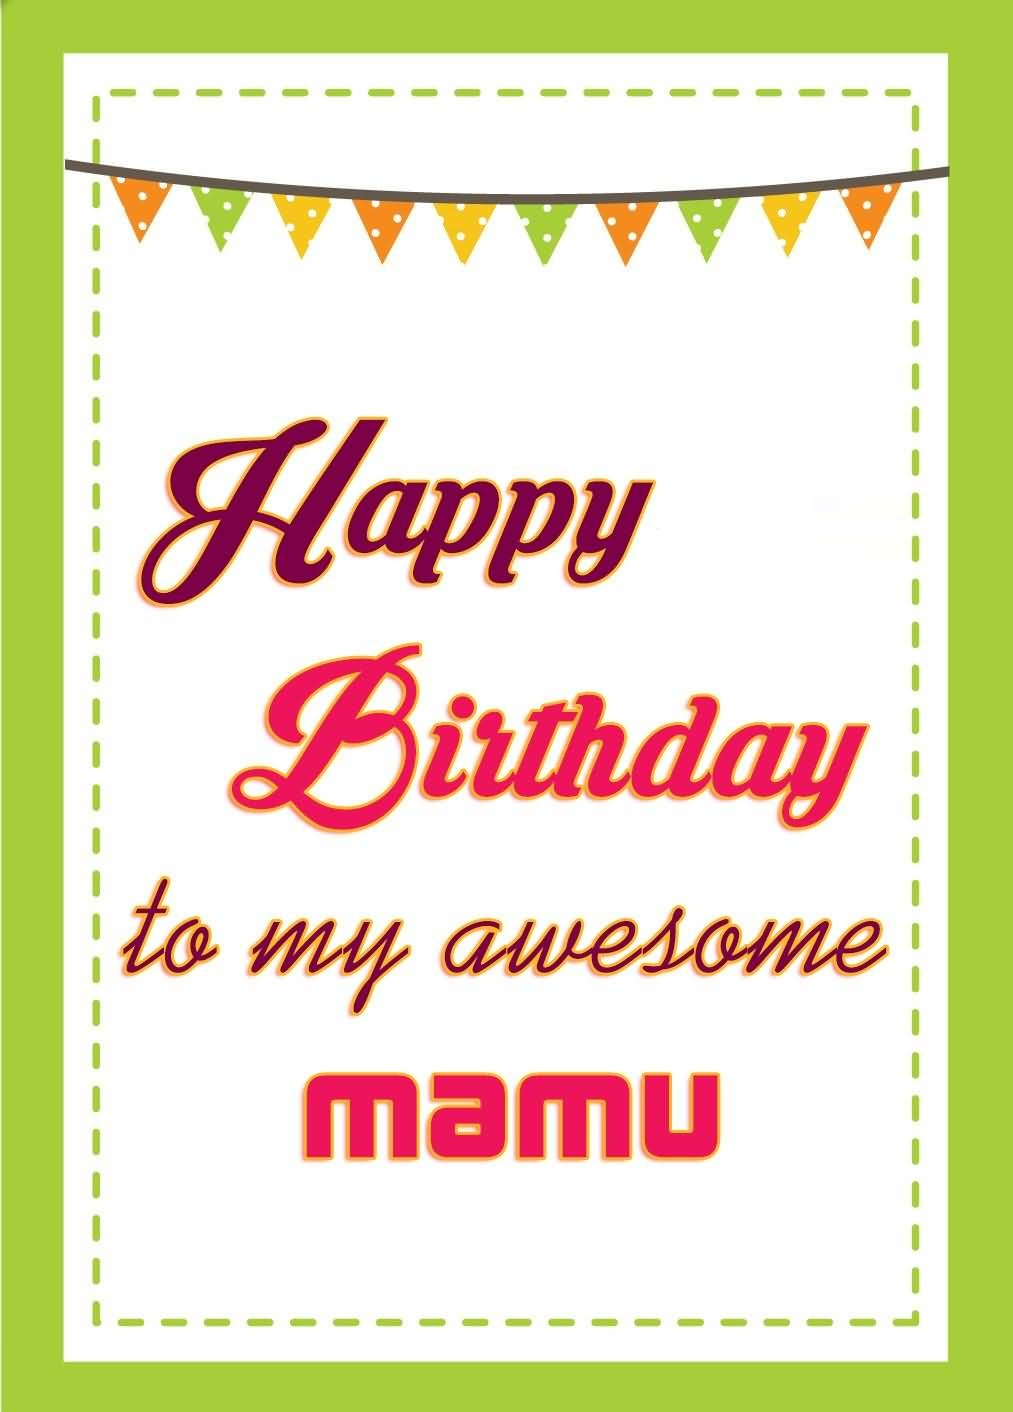 Greeting card for mamu happy birthday to my awesome mamu nicewishes greeting card for mamu happy birthday to my awesome mamu kristyandbryce Image collections